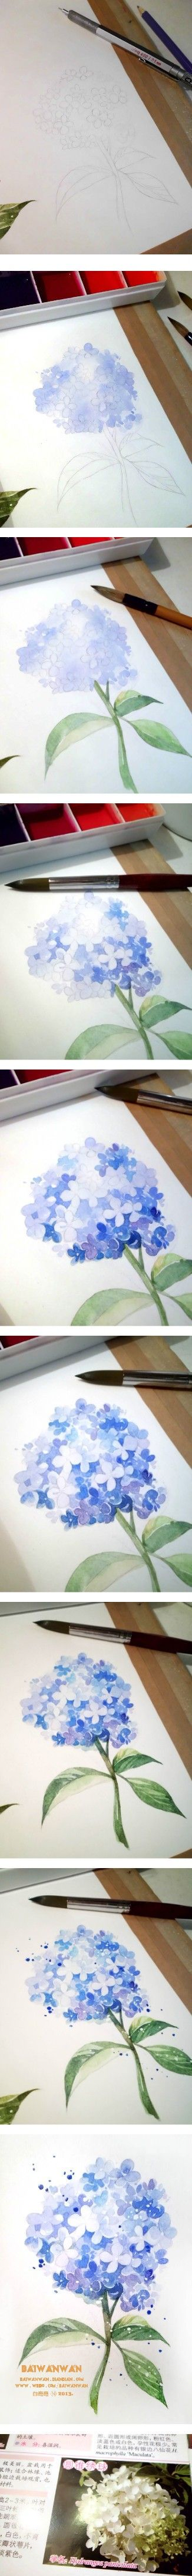 Watercolor hydrangea step-by-step